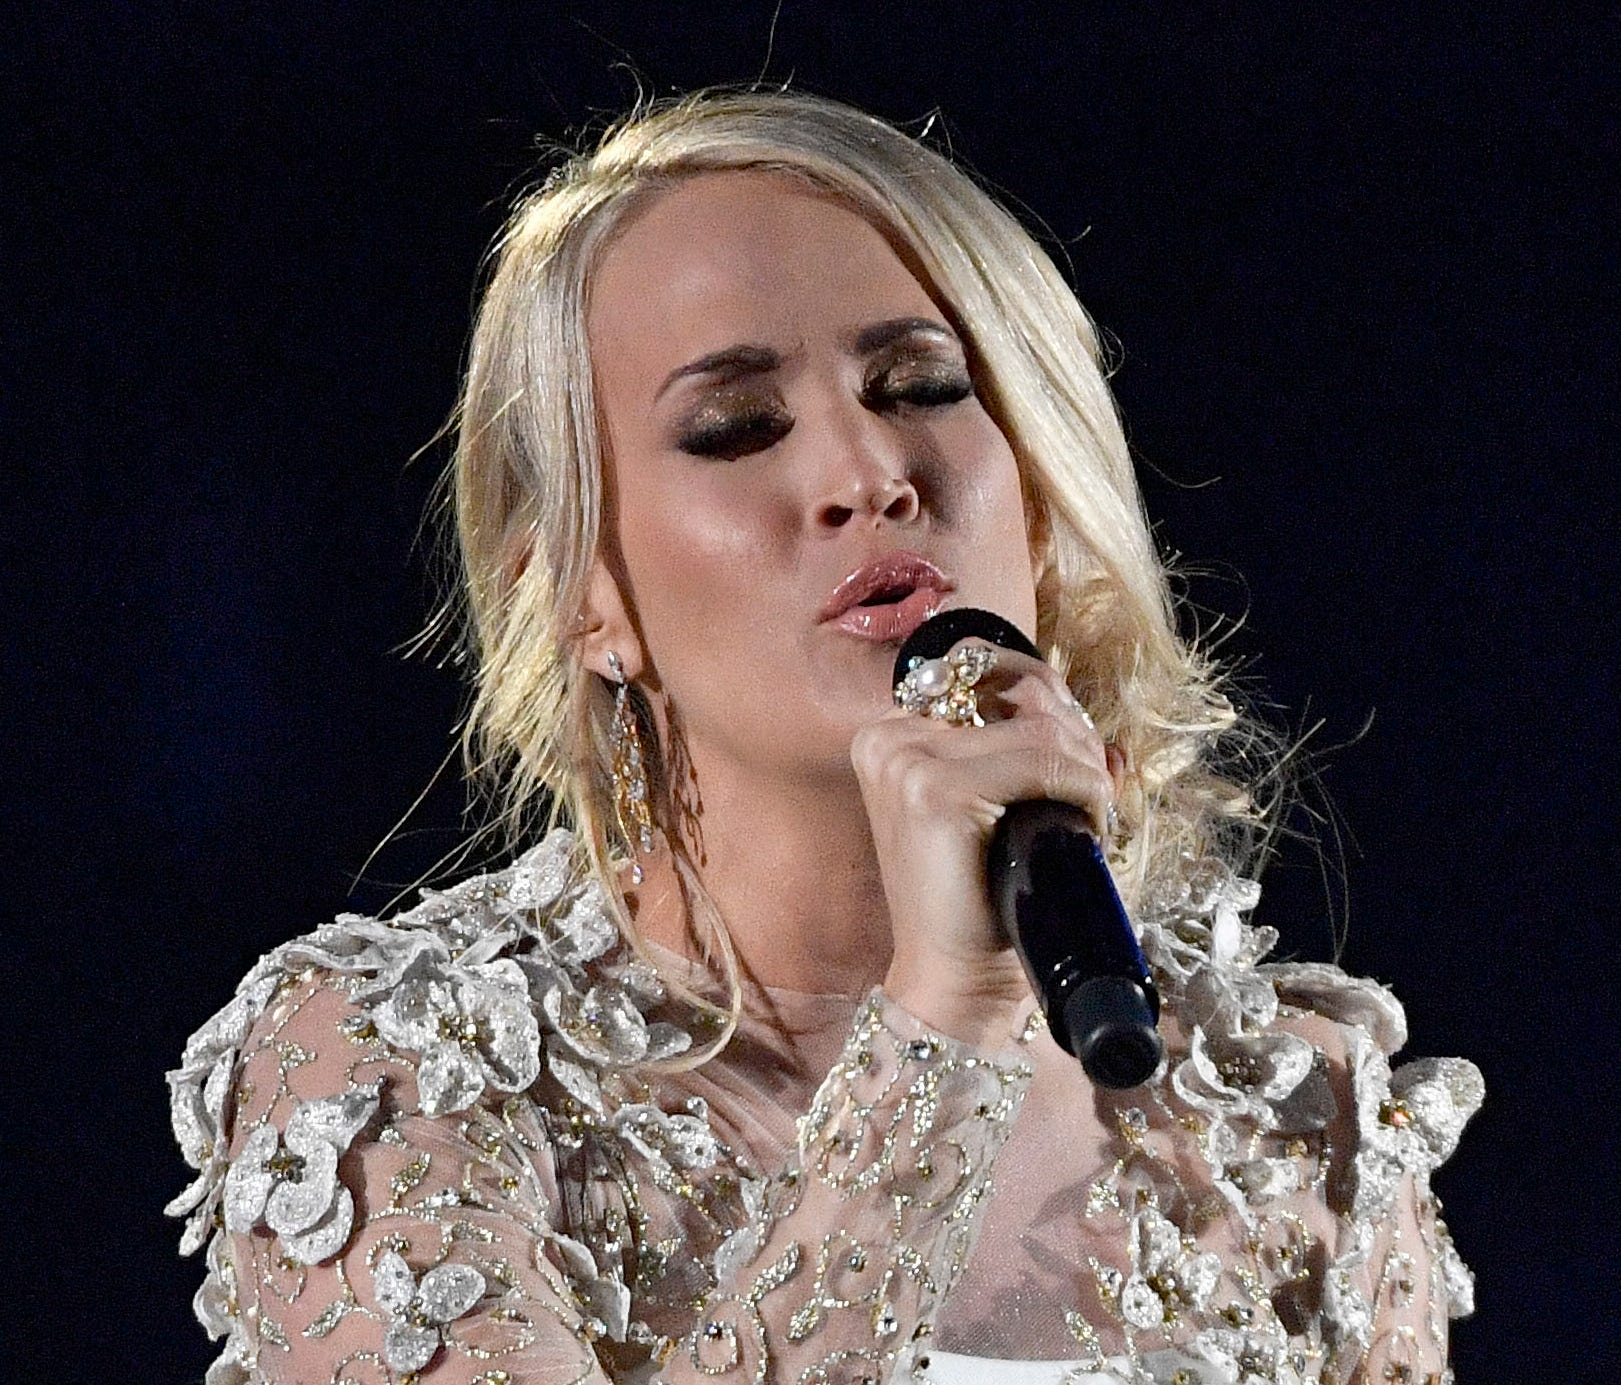 Super Bowl song 'The Champion' features vocals by country singer Carrie Underwood and hip hop artist Ludacris.